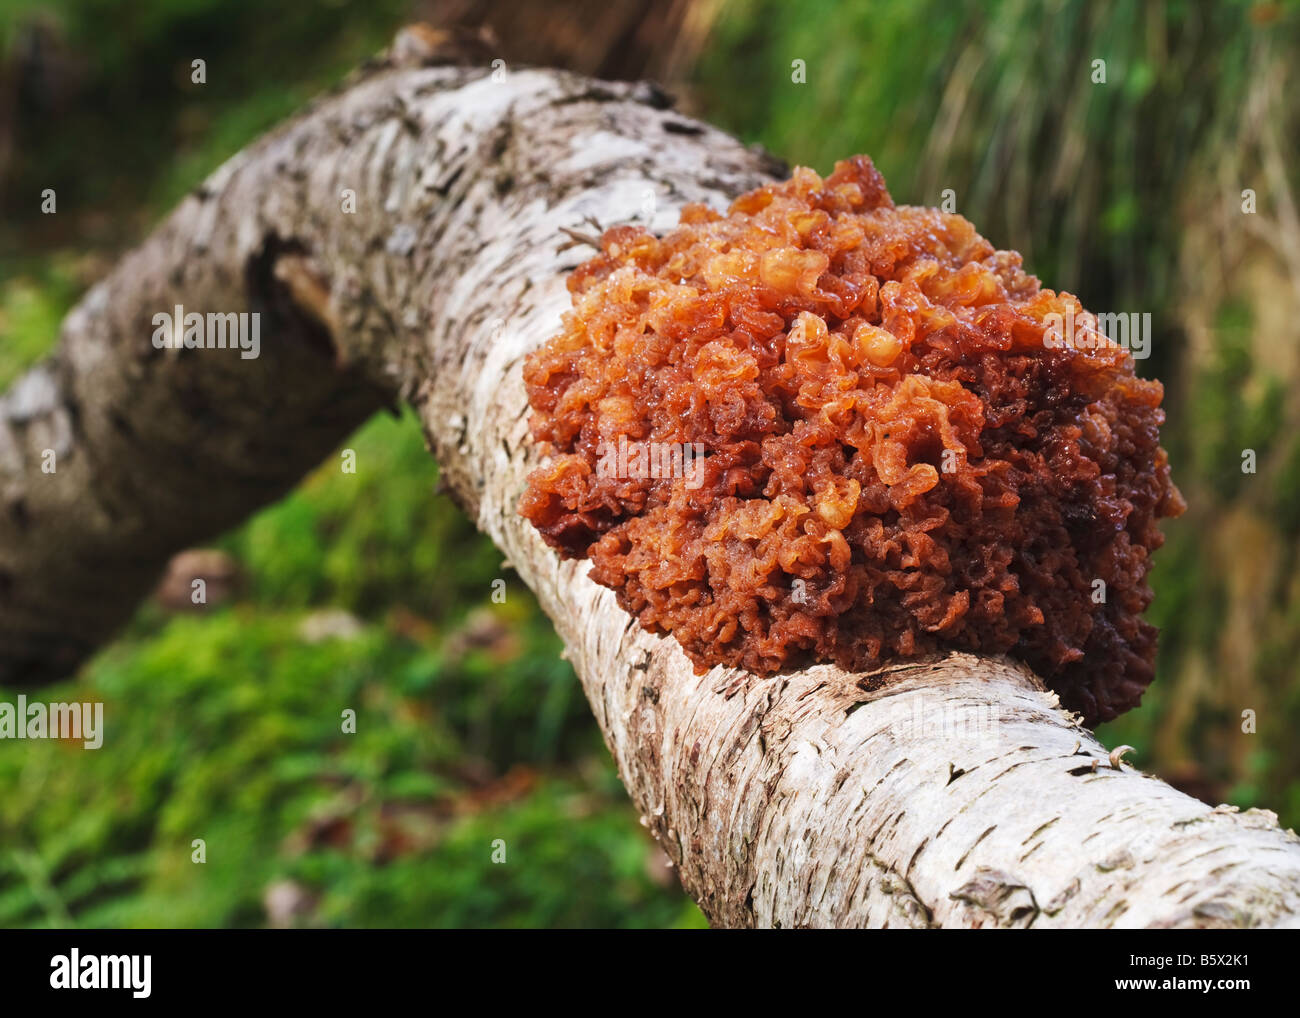 Large clump of tremella mesenterica (Yellow Brain Fungus) growing on the side of a silver birch tree in a British - Stock Image